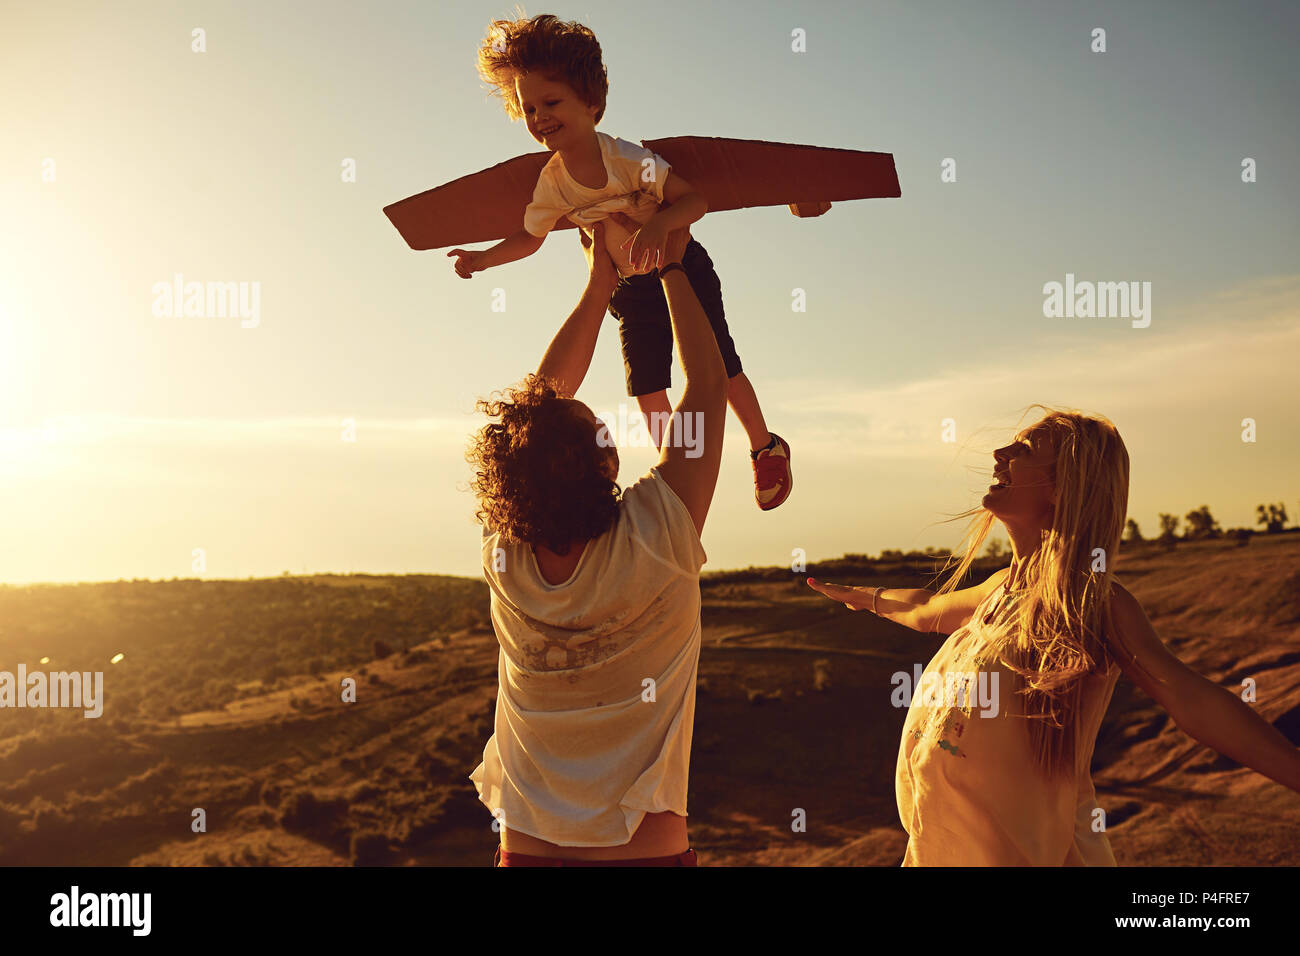 Family playing in nature at sunset - Stock Image